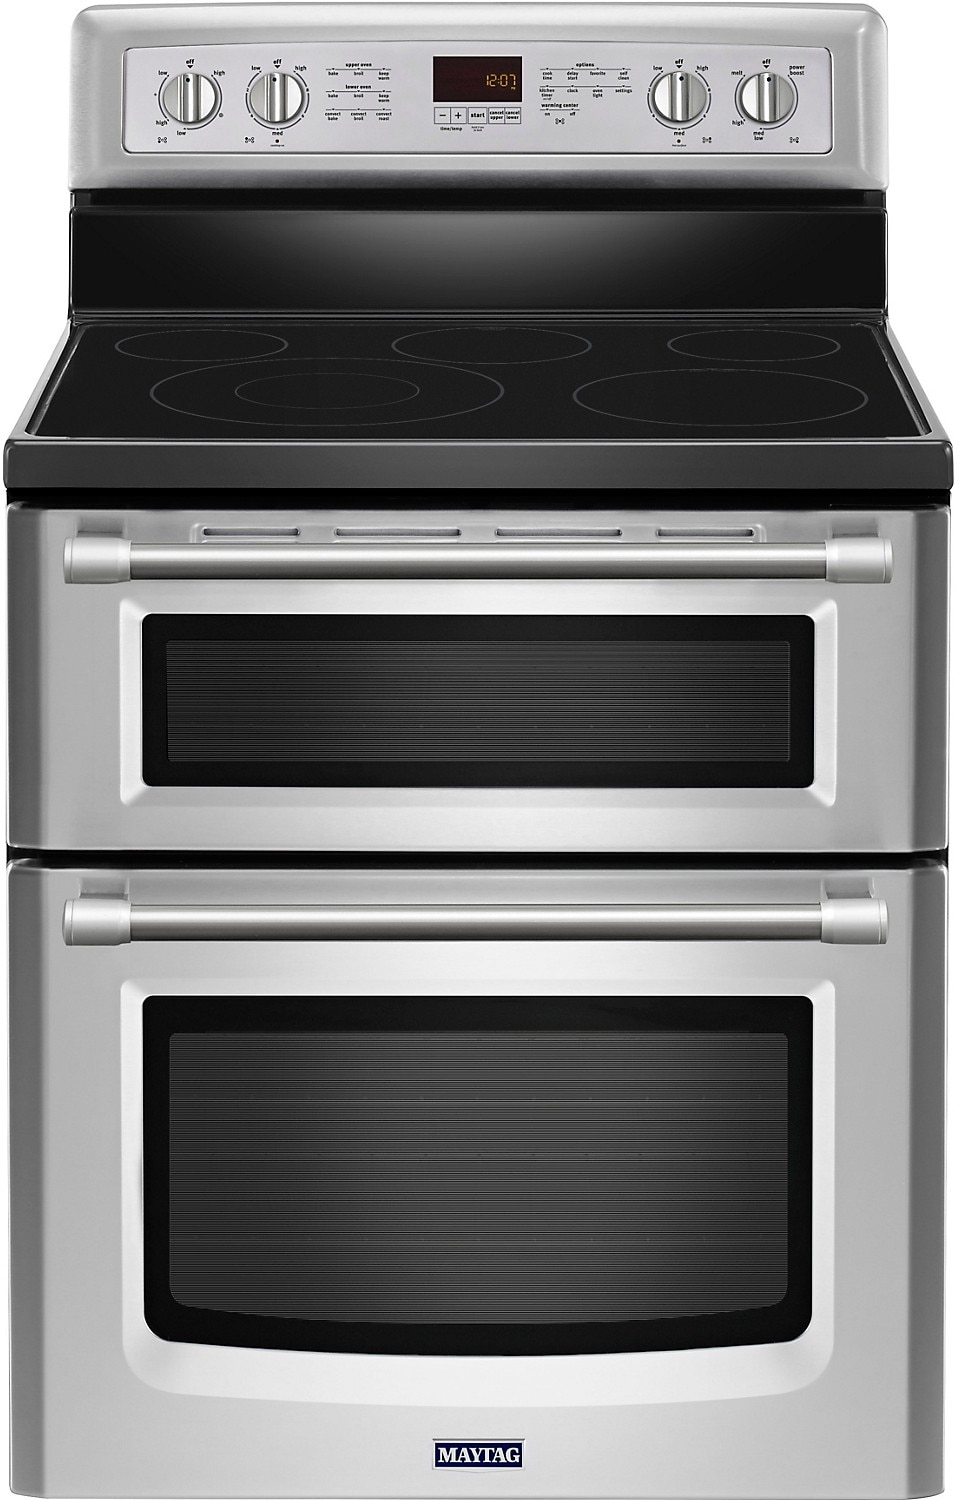 Maytag gemini 6 7 cu ft double oven electric range stainless steel united furniture - Maytag electric double oven range ...